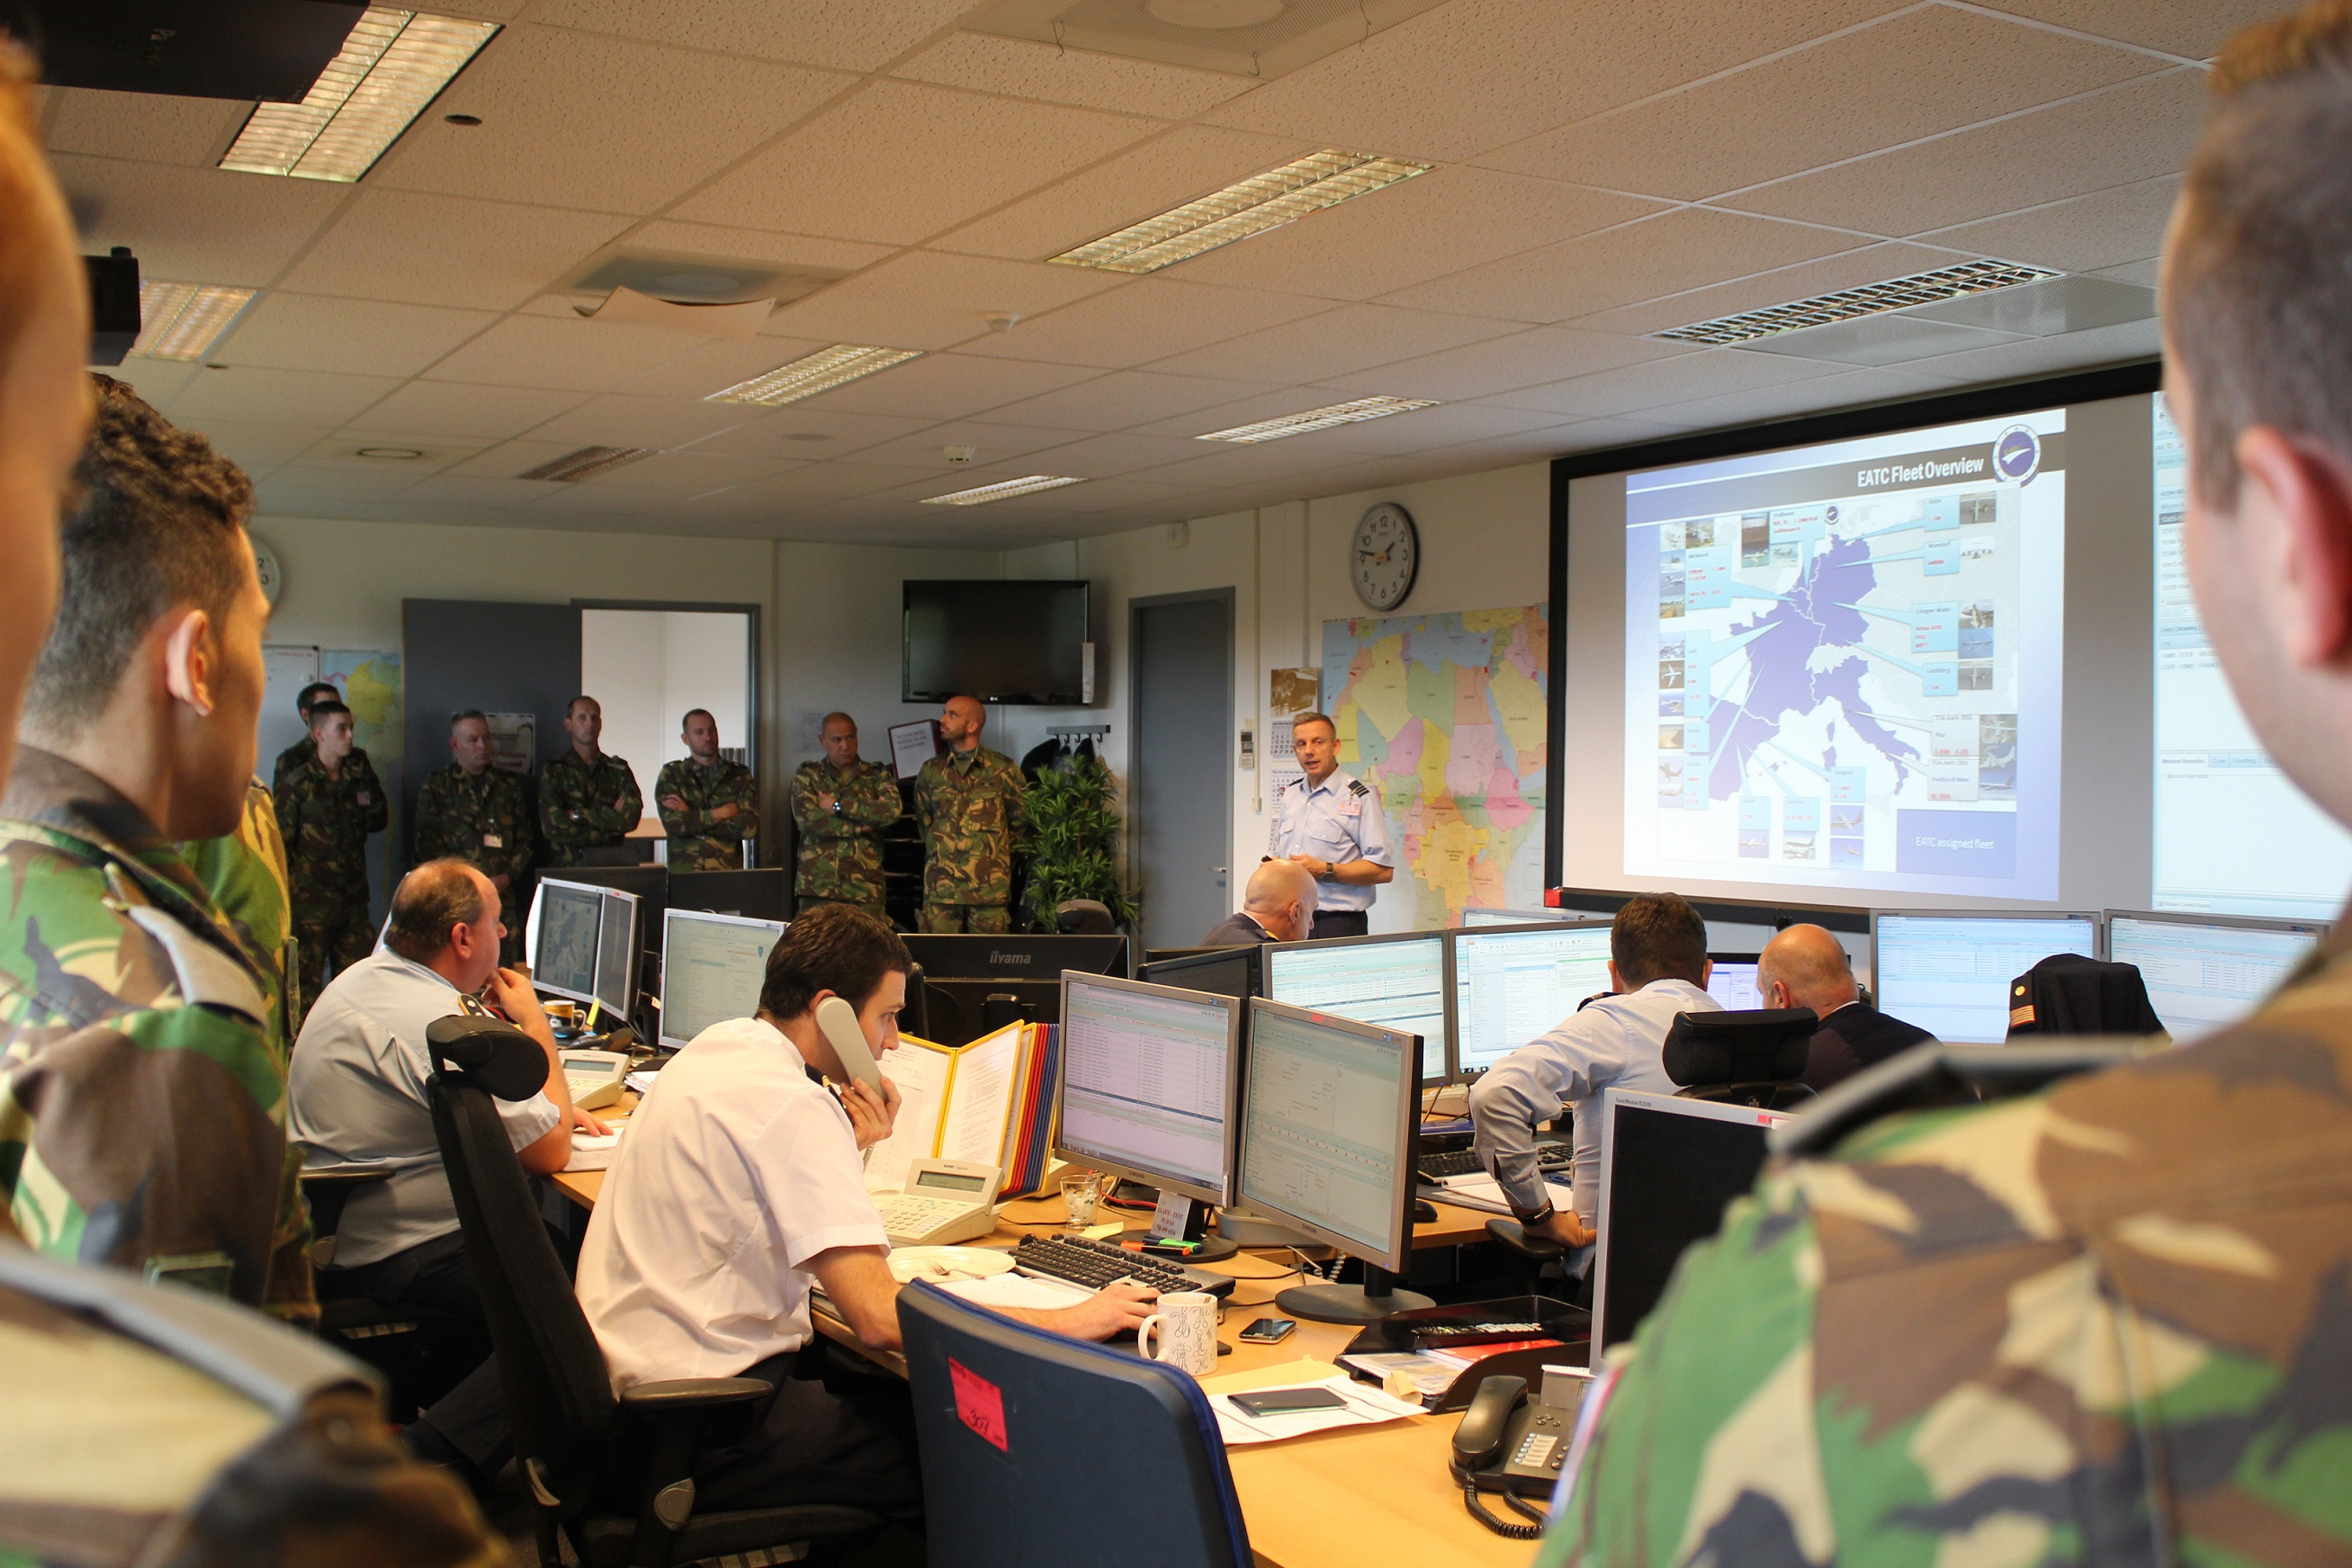 EATC INTRODUCES ITSELF TO THE DUTCH AIR CADETS FROM THE MILITARY ACADEMY